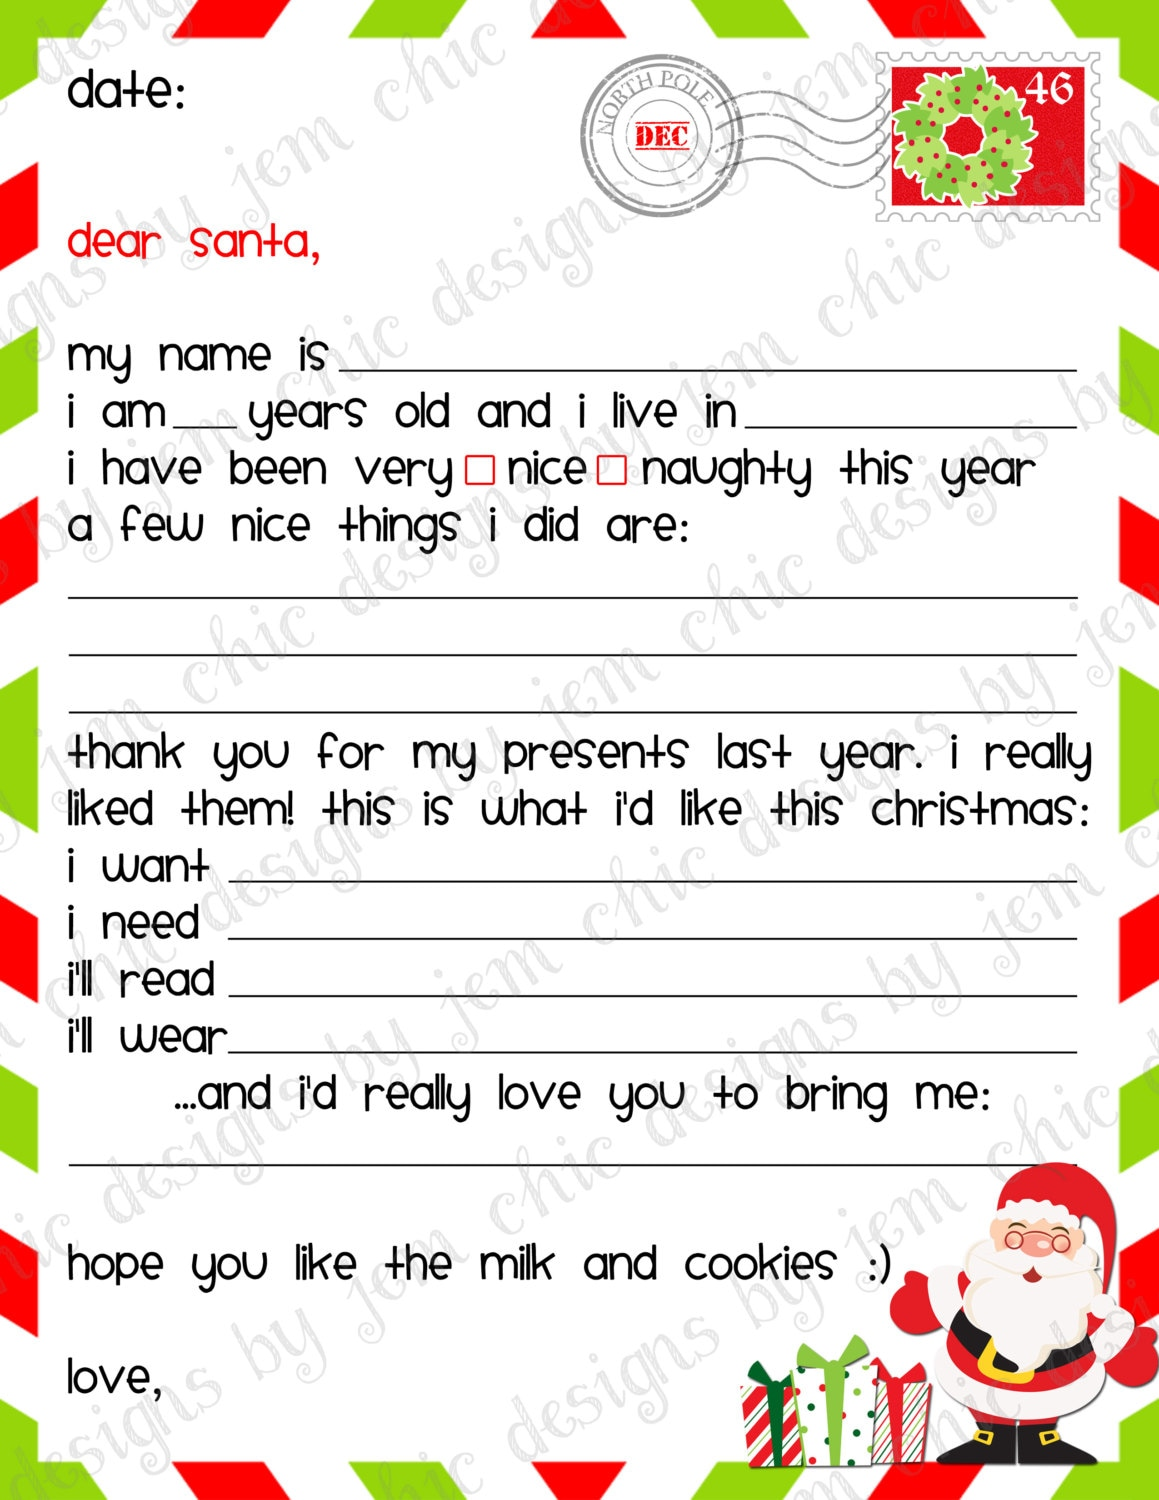 dear santa letter template free - kids christmas wishlist printable dear santa by